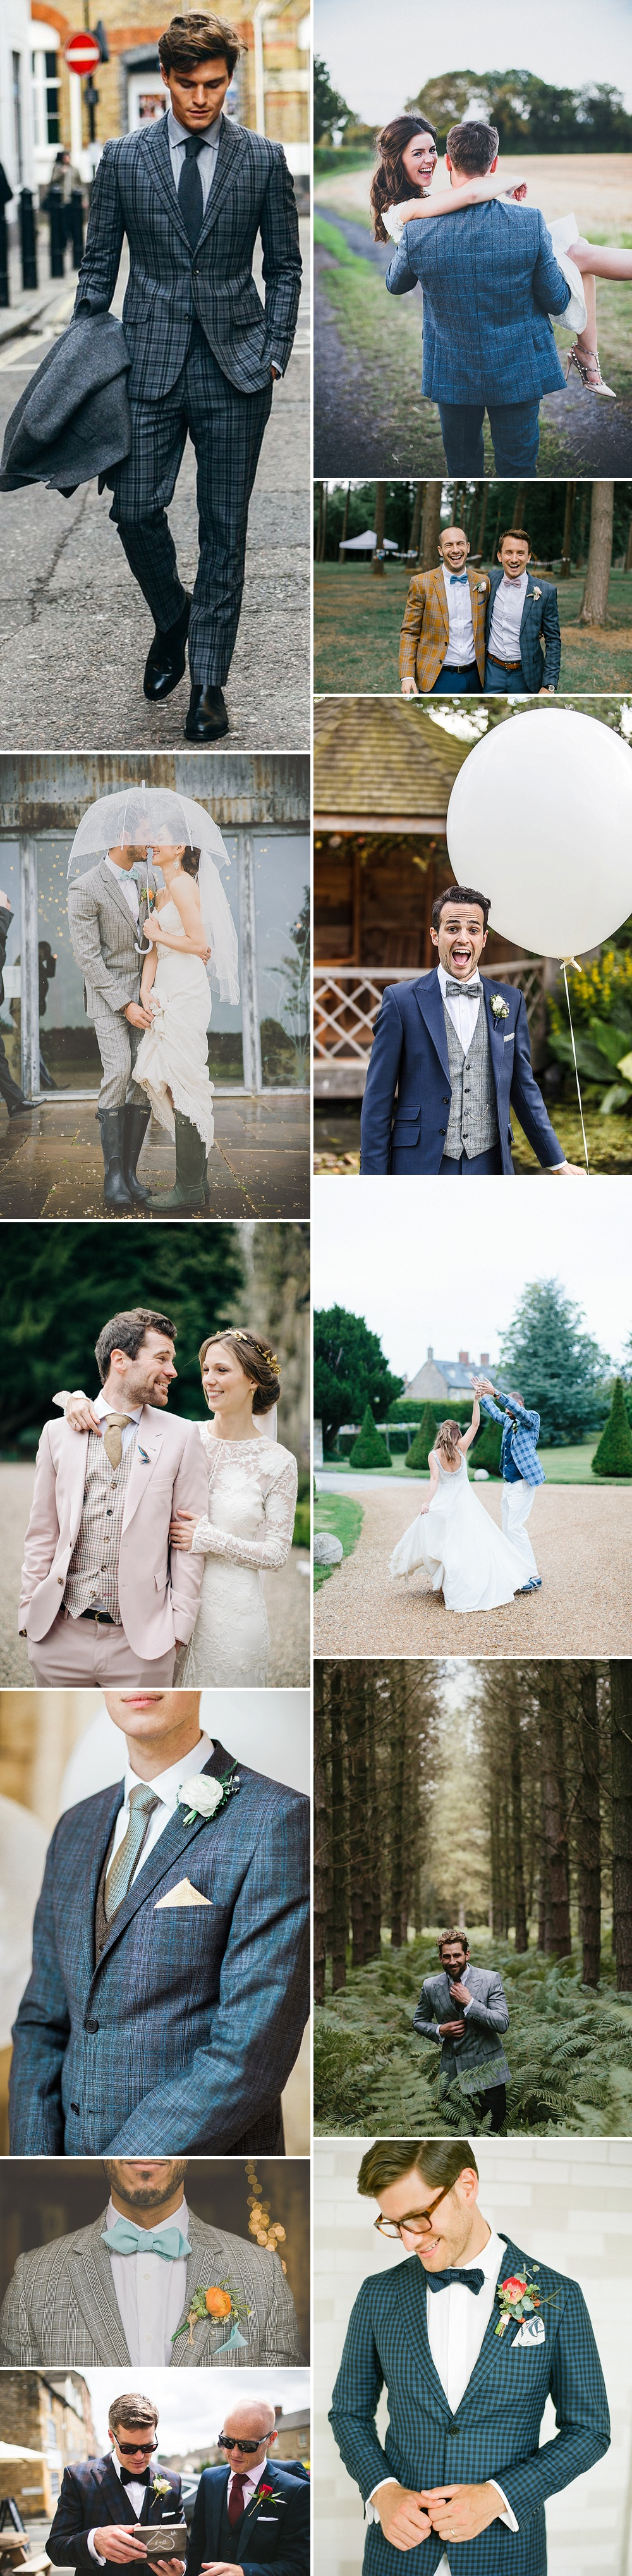 Groom Wearing Checked Suit For Wedding | Groom Fashion Inspiration